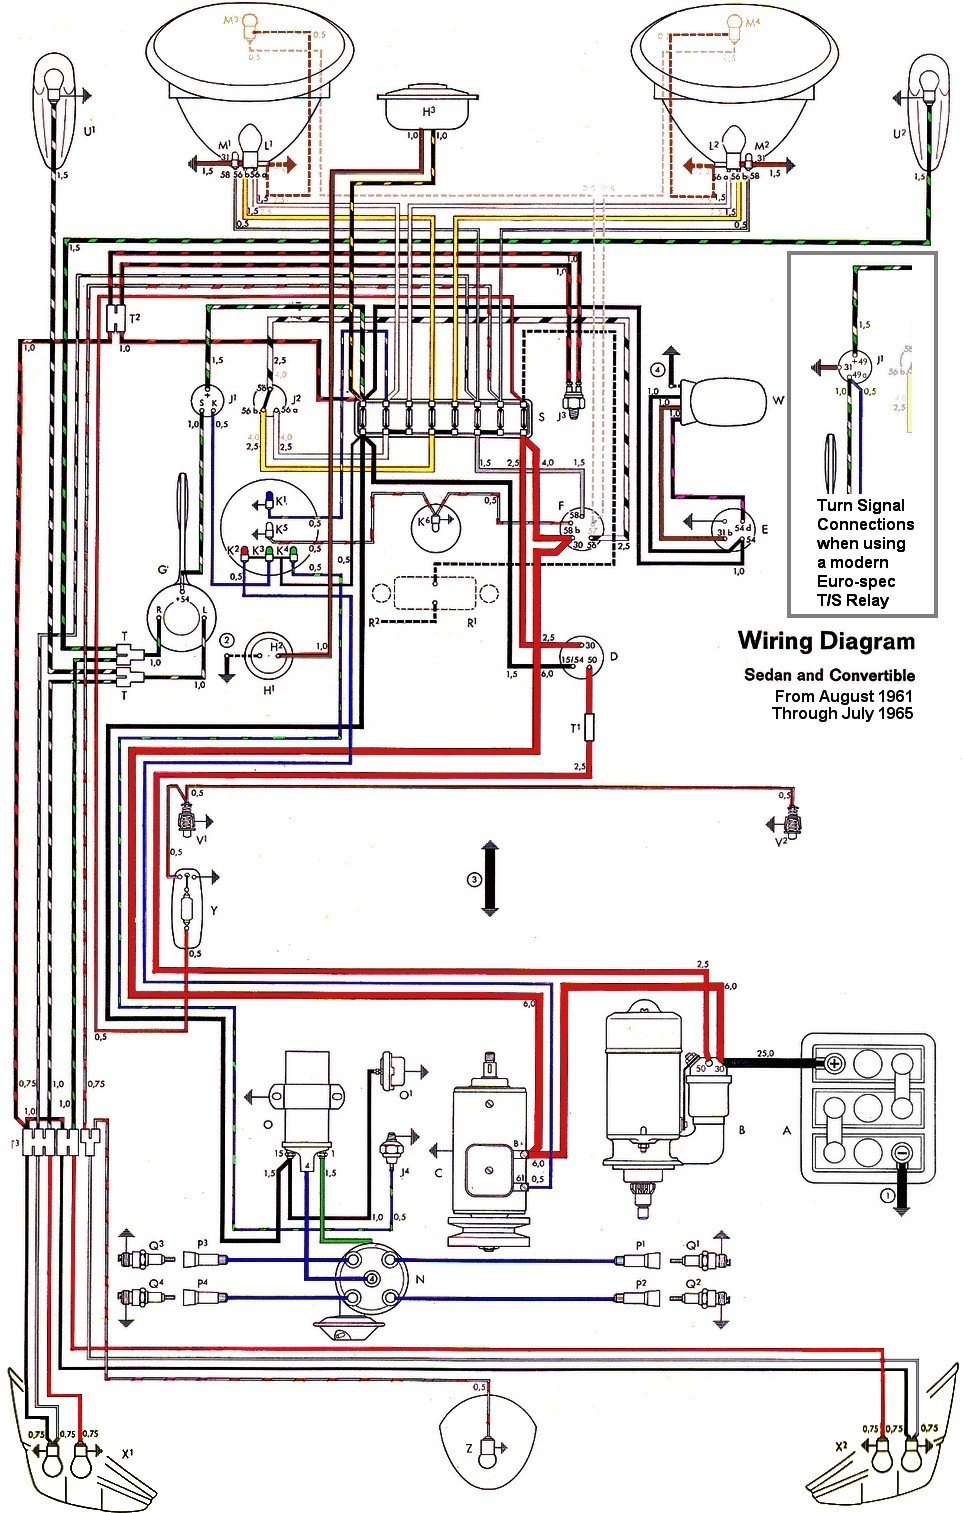 bug_62 65withinset thesamba com type 1 wiring diagrams vw wiring diagrams at webbmarketing.co